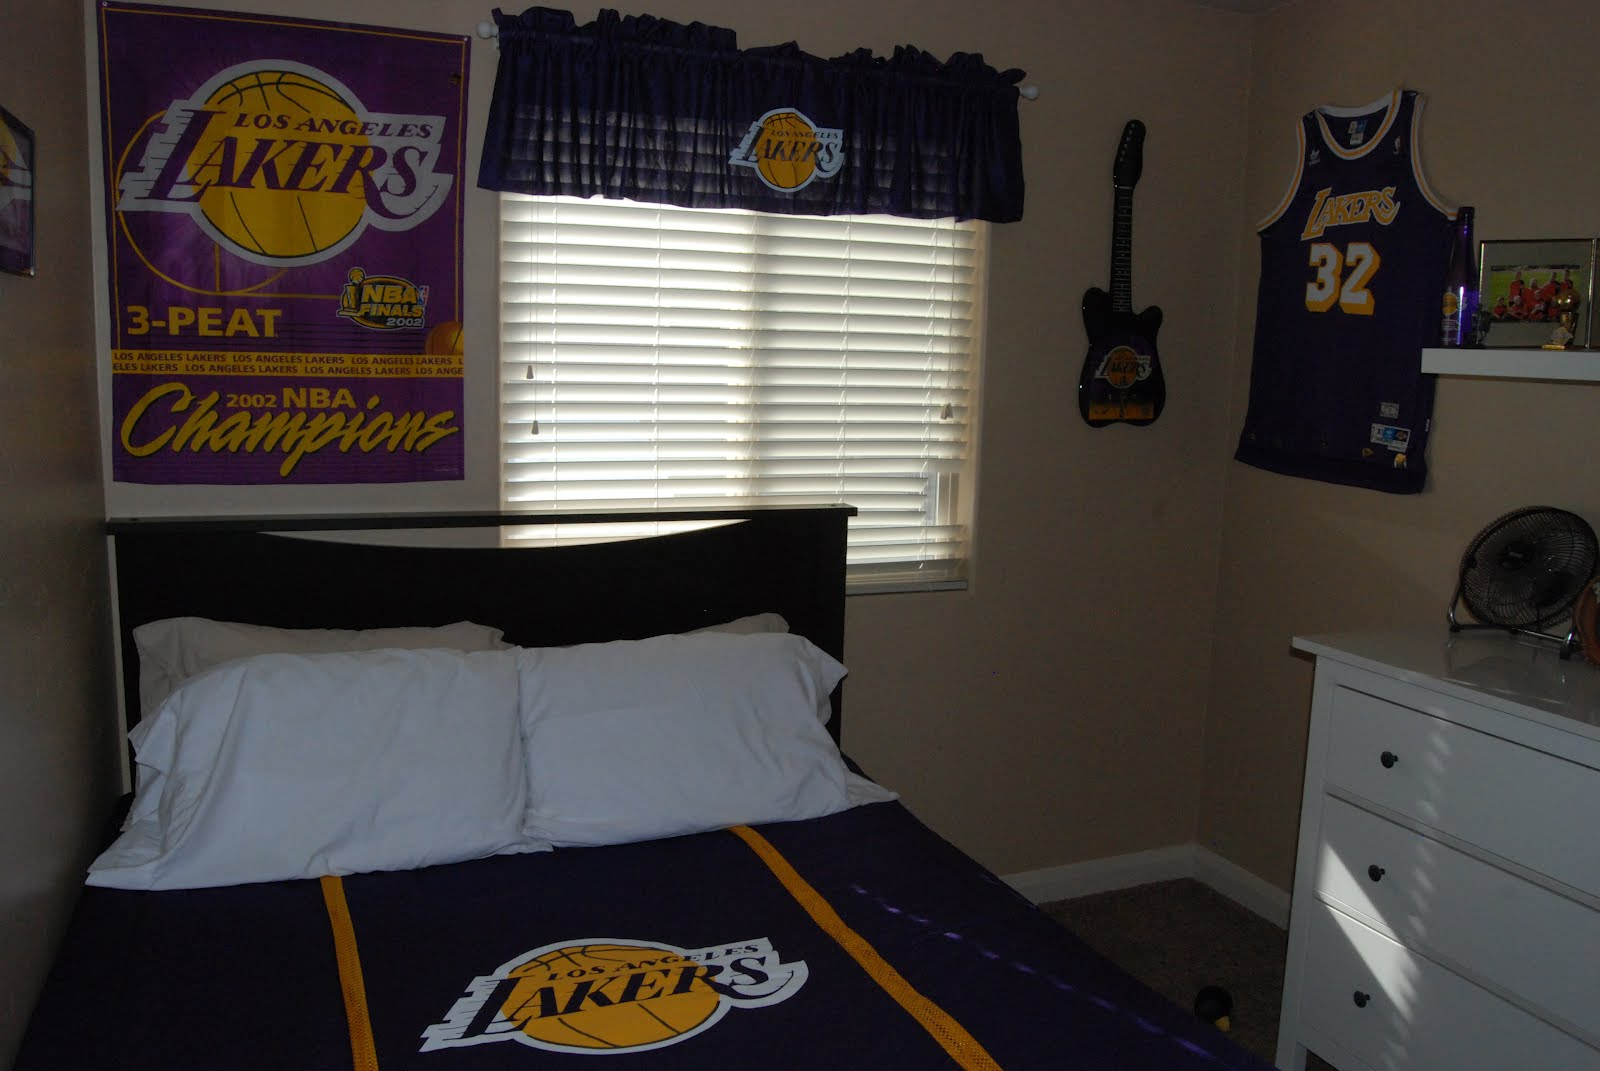 Only Had Buy The Bedding And Valance Everything Else Lakers More